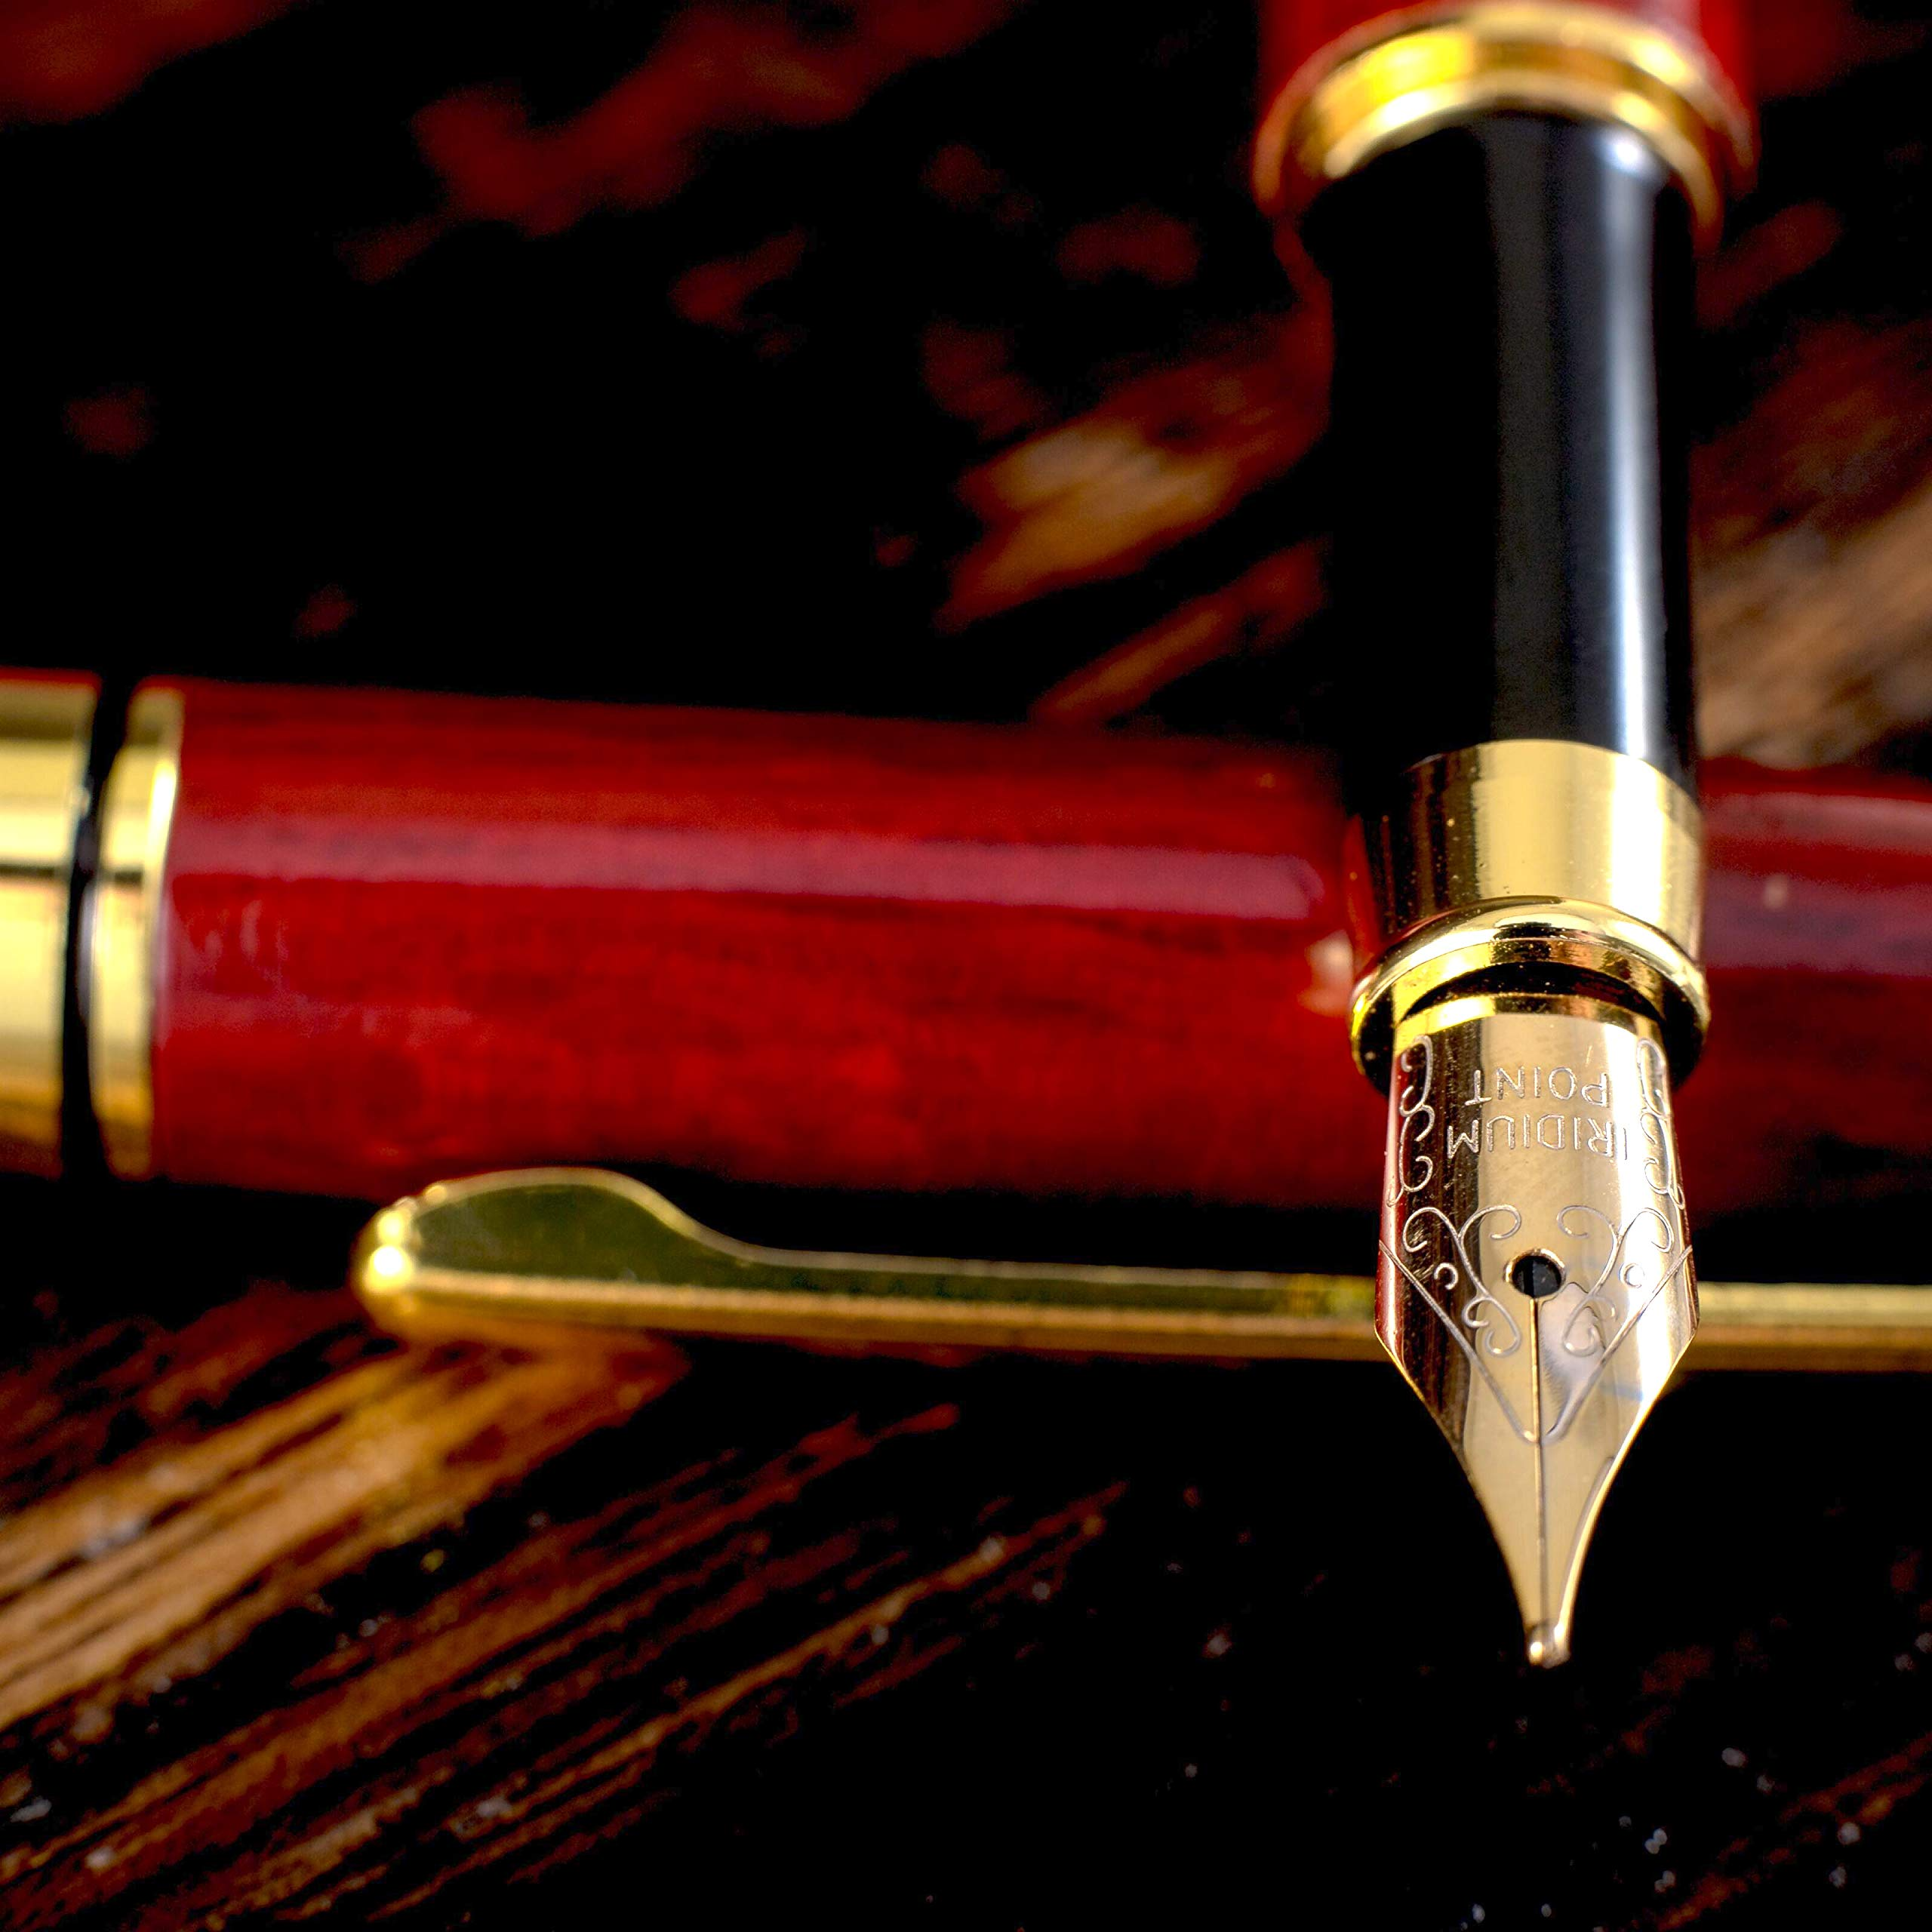 Gorgeous Red Fountain Pen made of Luxury Wood with Refillable Converter, Beautiful Case Set and Medium Nib Point. Works Smoothly with Disposable Ink Cartridges. Fine Calligraphy Pens. Modern Classic by MONAGGIO